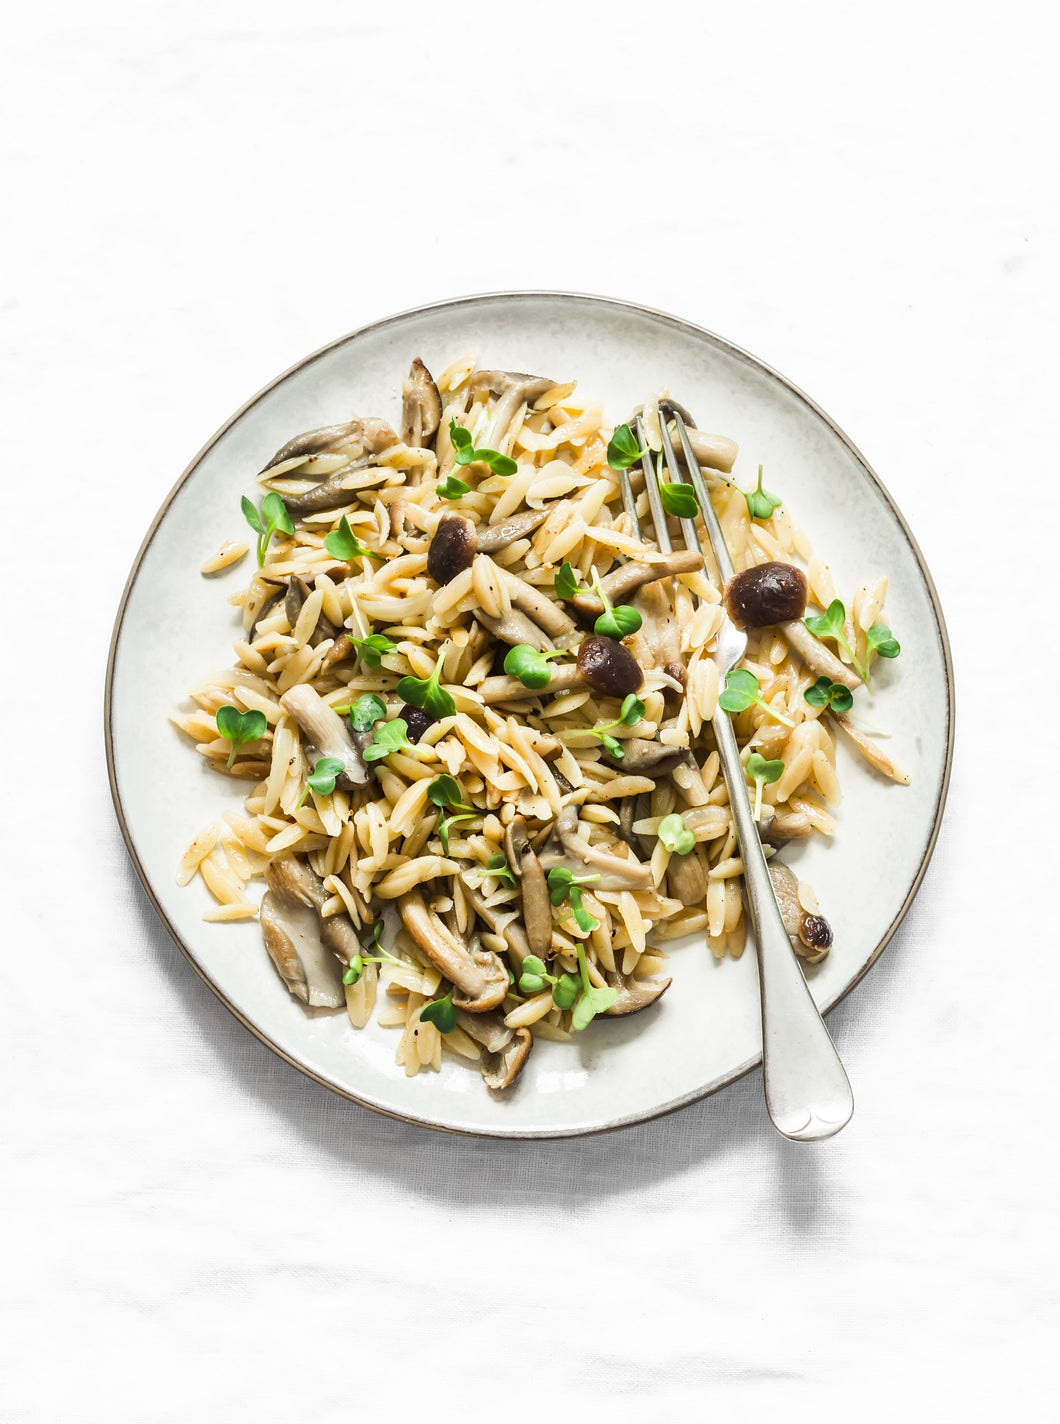 Toasted Orzo and Rice with Brussels Sprouts and Mushrooms